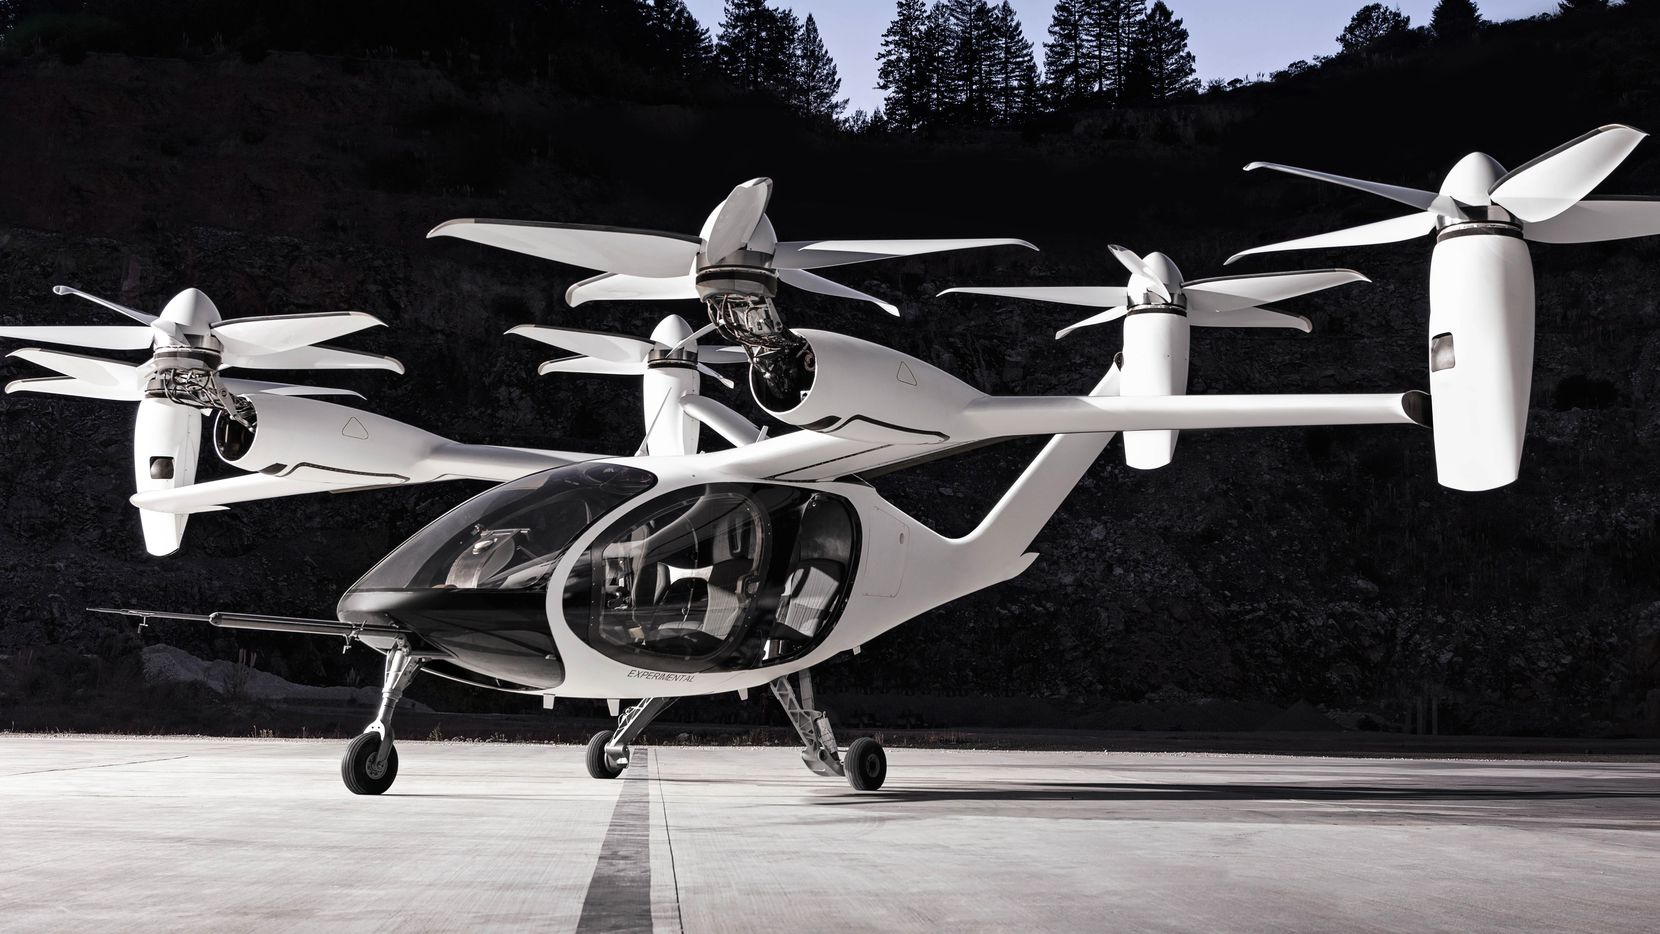 With the help of NASA, the North Central Texas Council of Governments will study the possibility of implementing air taxis and drones into future transportation plans. The series of workshops will begin June 16.